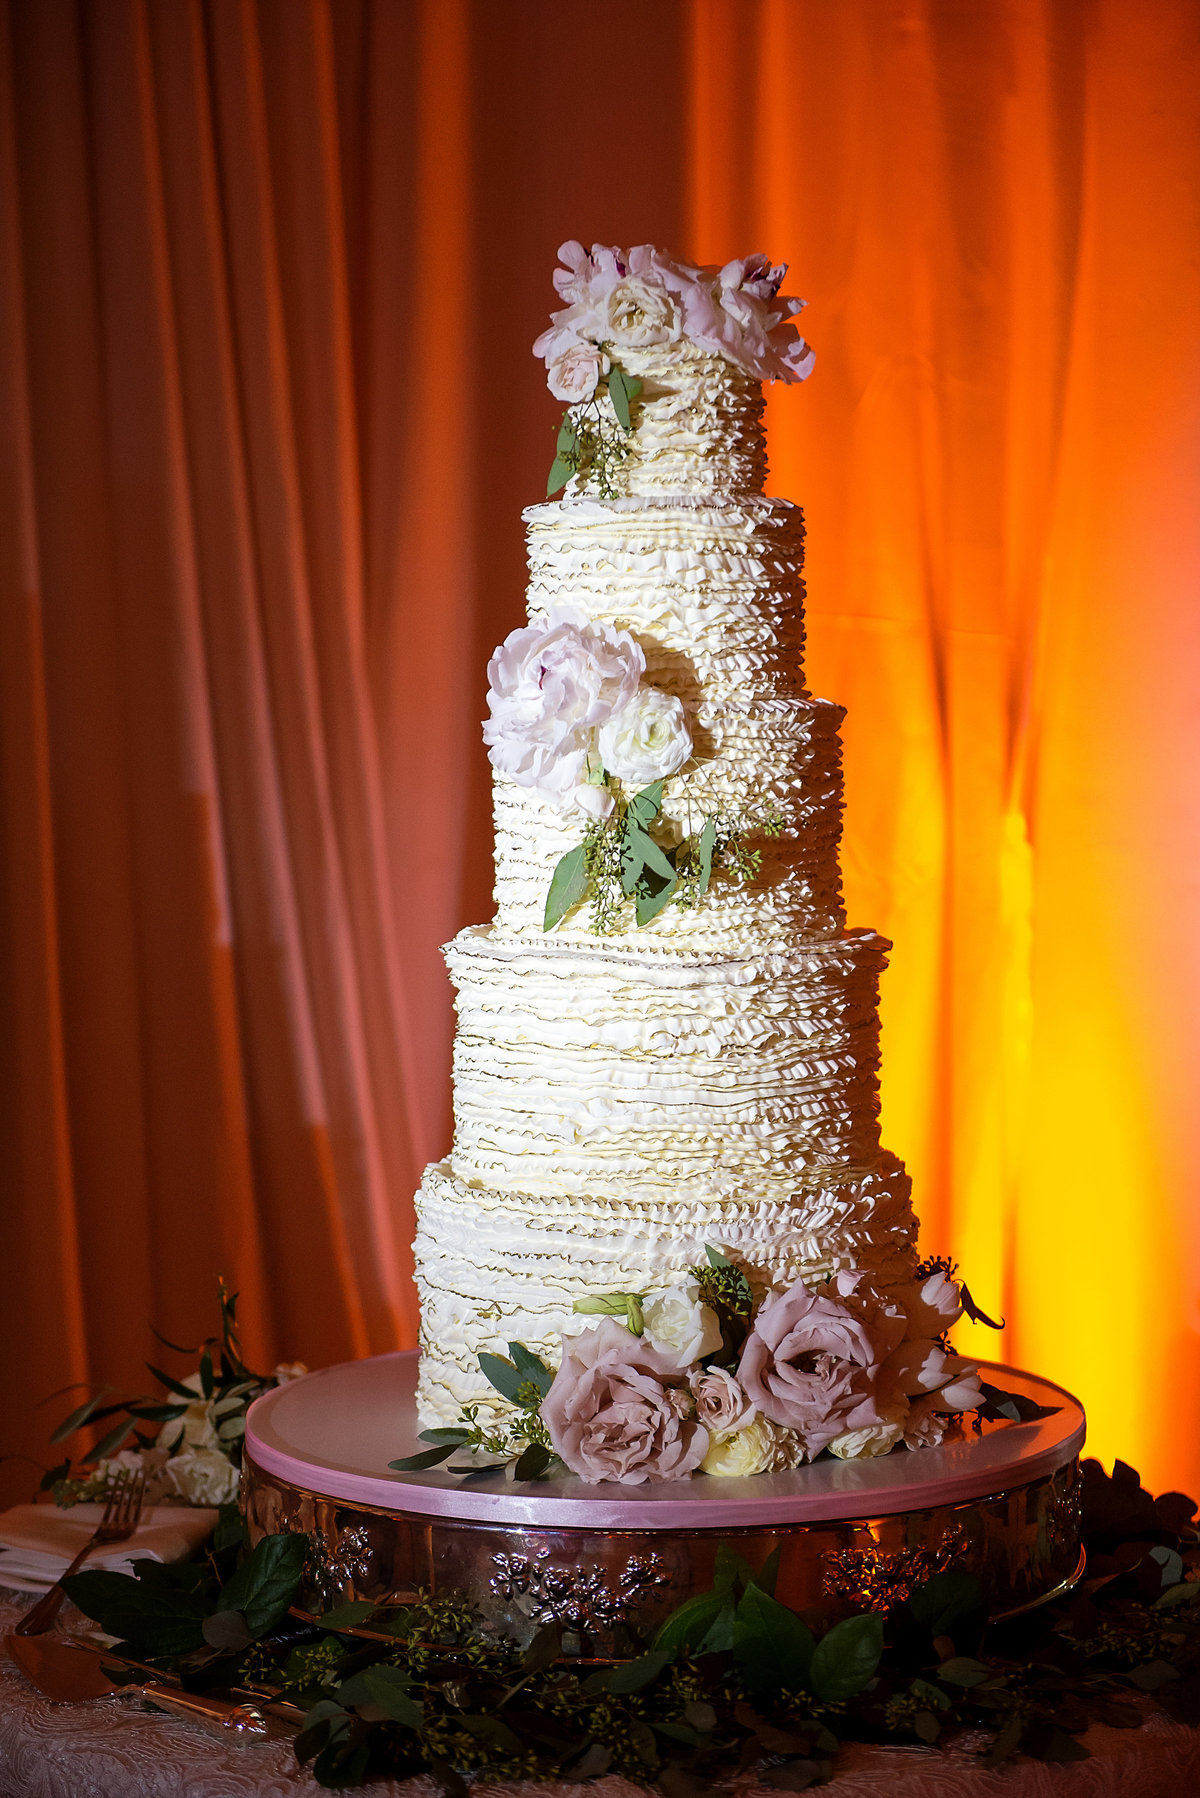 Rustic wedding cake bakery in Miami